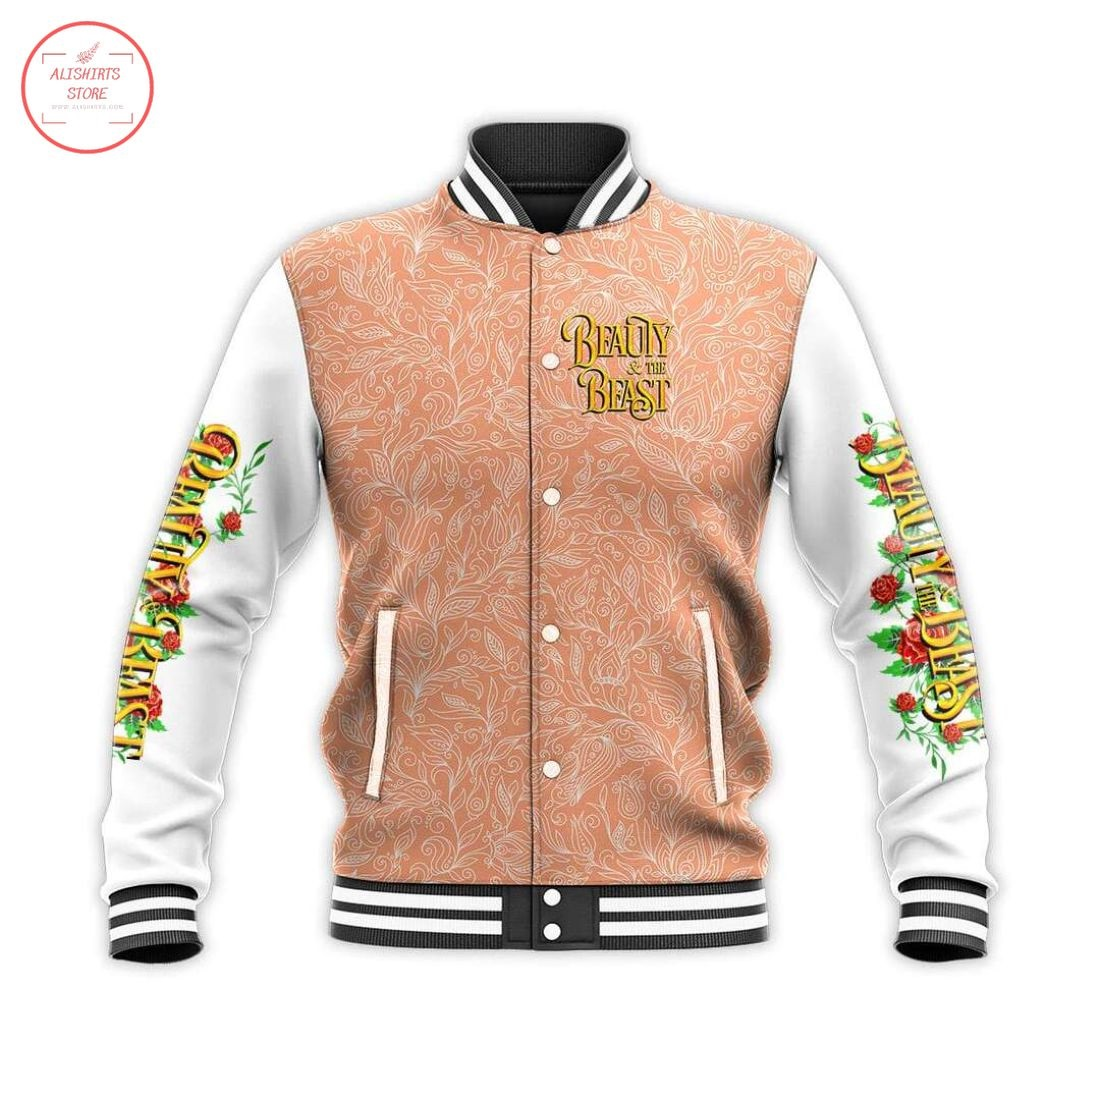 Beauty and The Beast Letterman Jacket